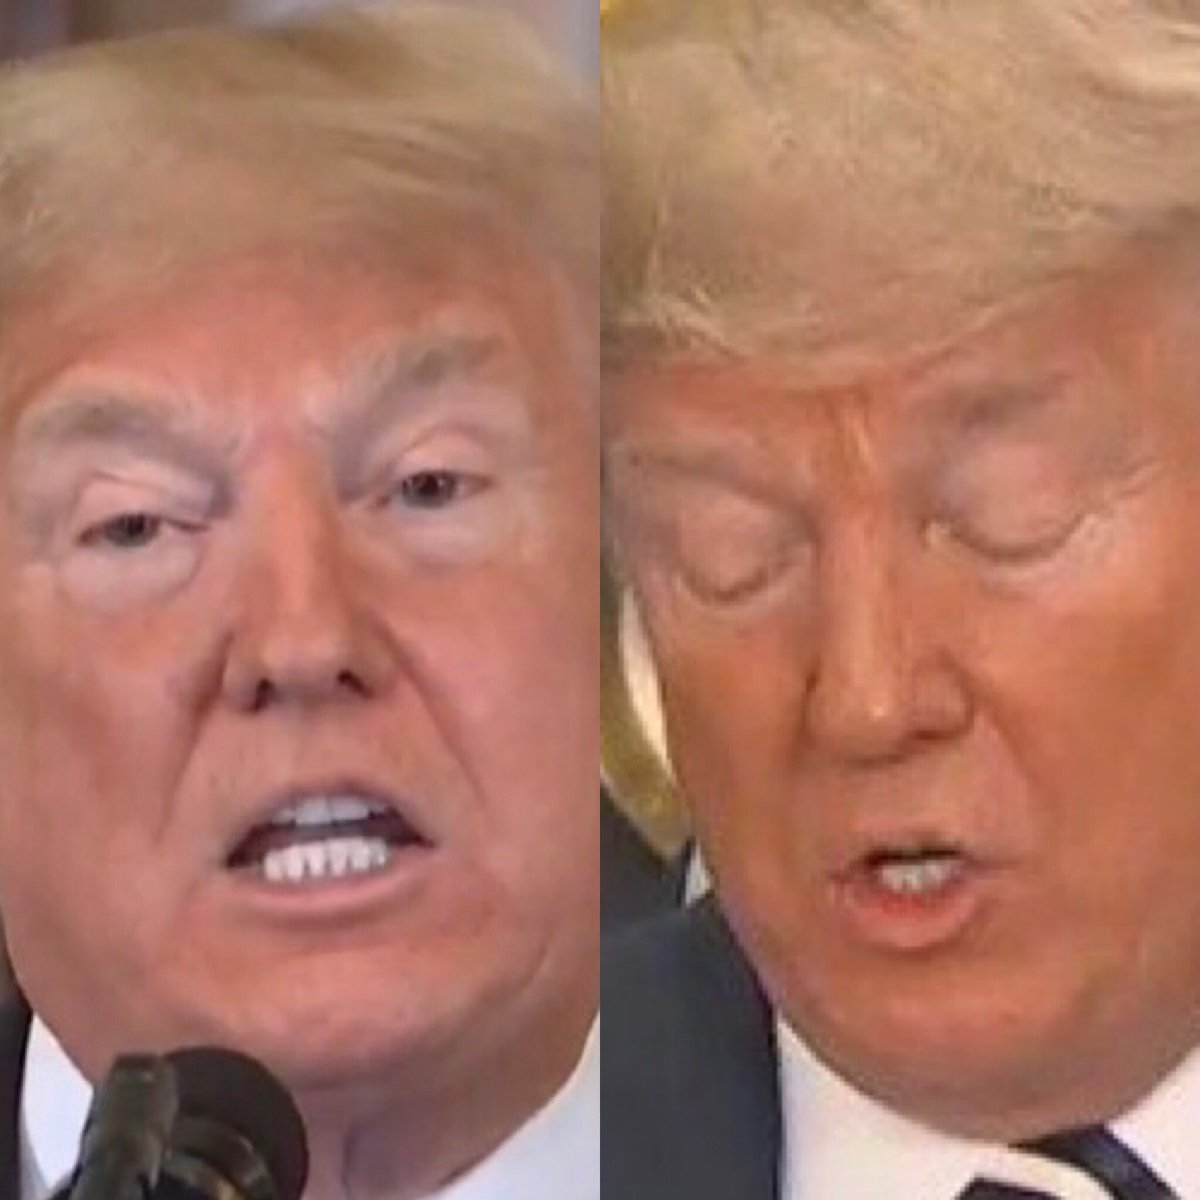 #TrumpIsAWhiteSupremacist and he's the worst kind - a white suoremacist who spray-tans to appear less white. <br>http://pic.twitter.com/hgto6IH8bY